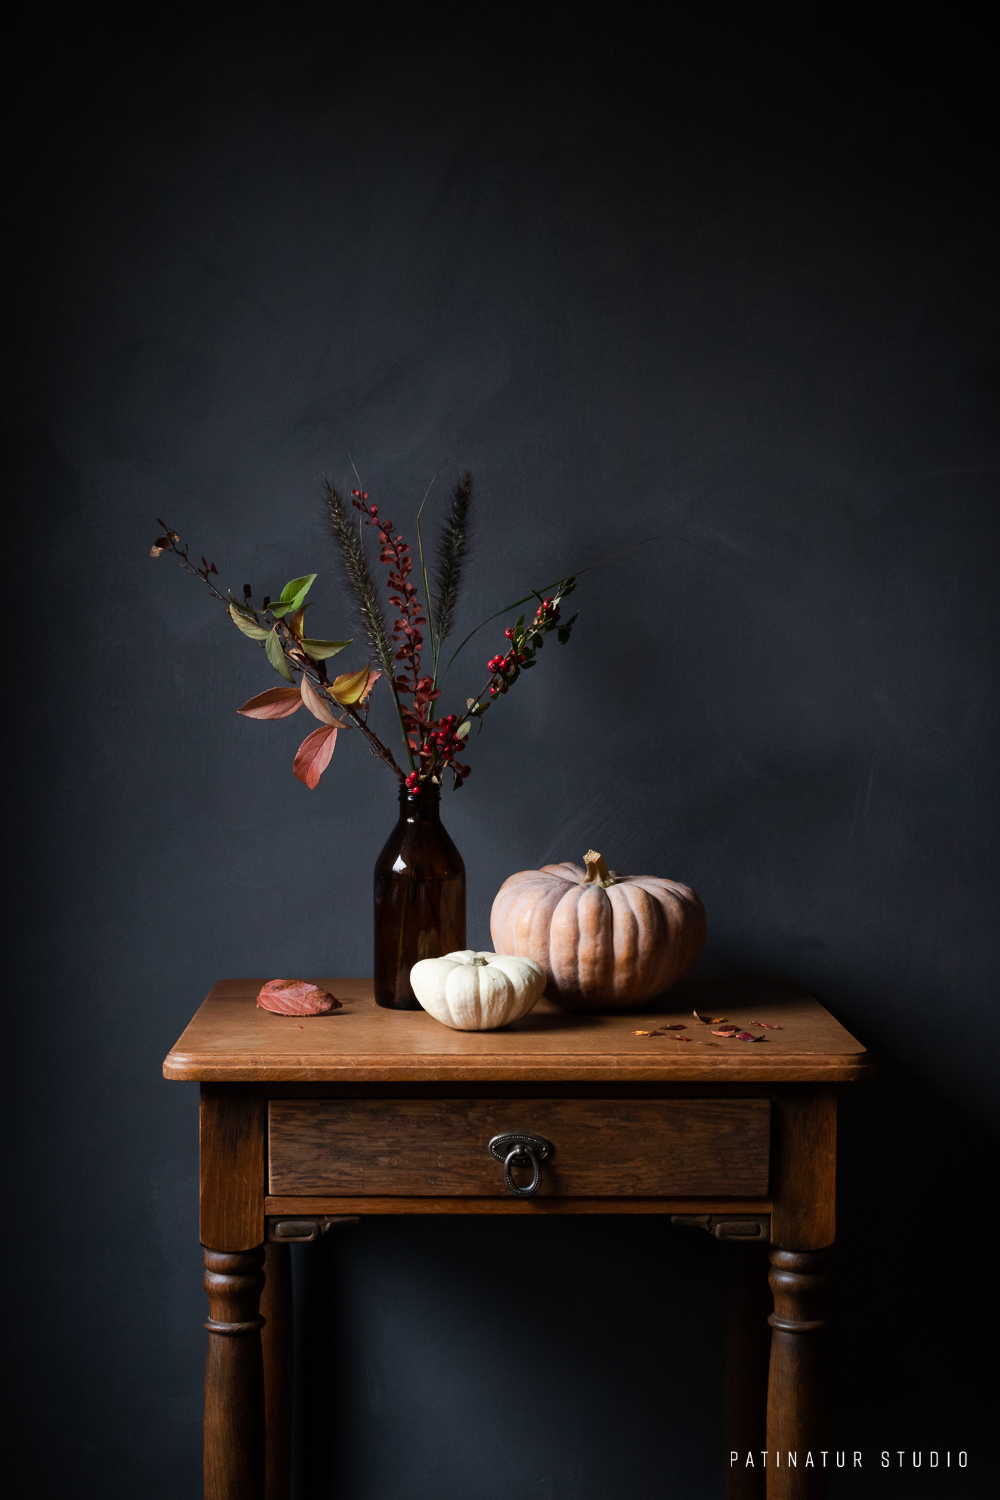 Dark and moody still life photo with autumn bouquet and pumpkins.utumn colours and berries.